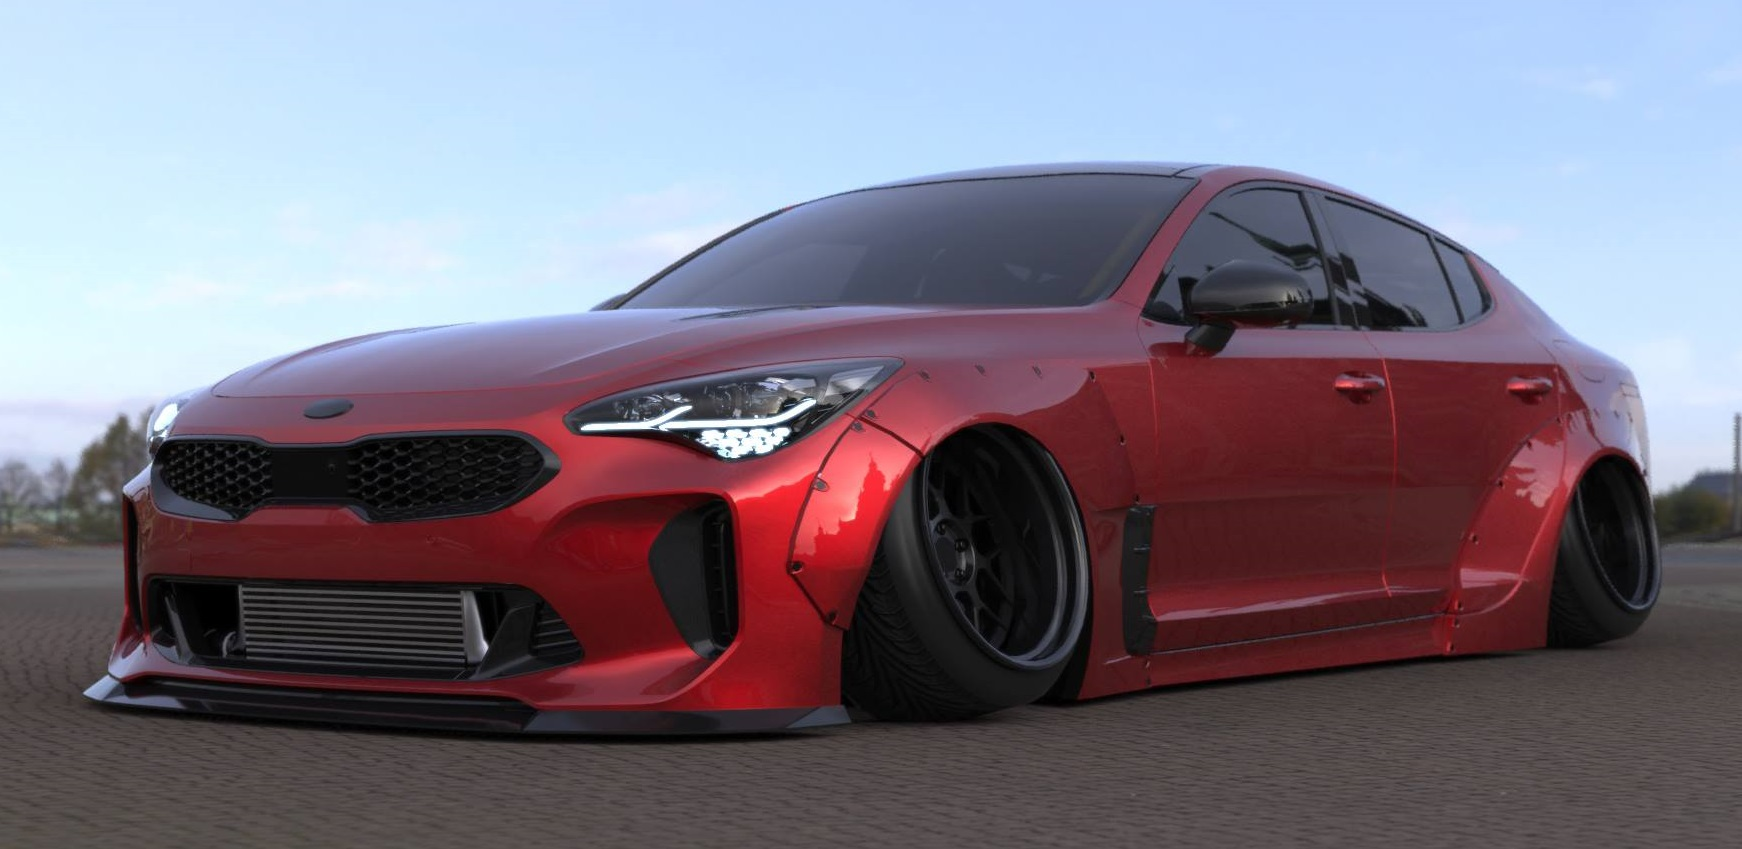 why not liberty walk performance kia stinger widebody. Black Bedroom Furniture Sets. Home Design Ideas